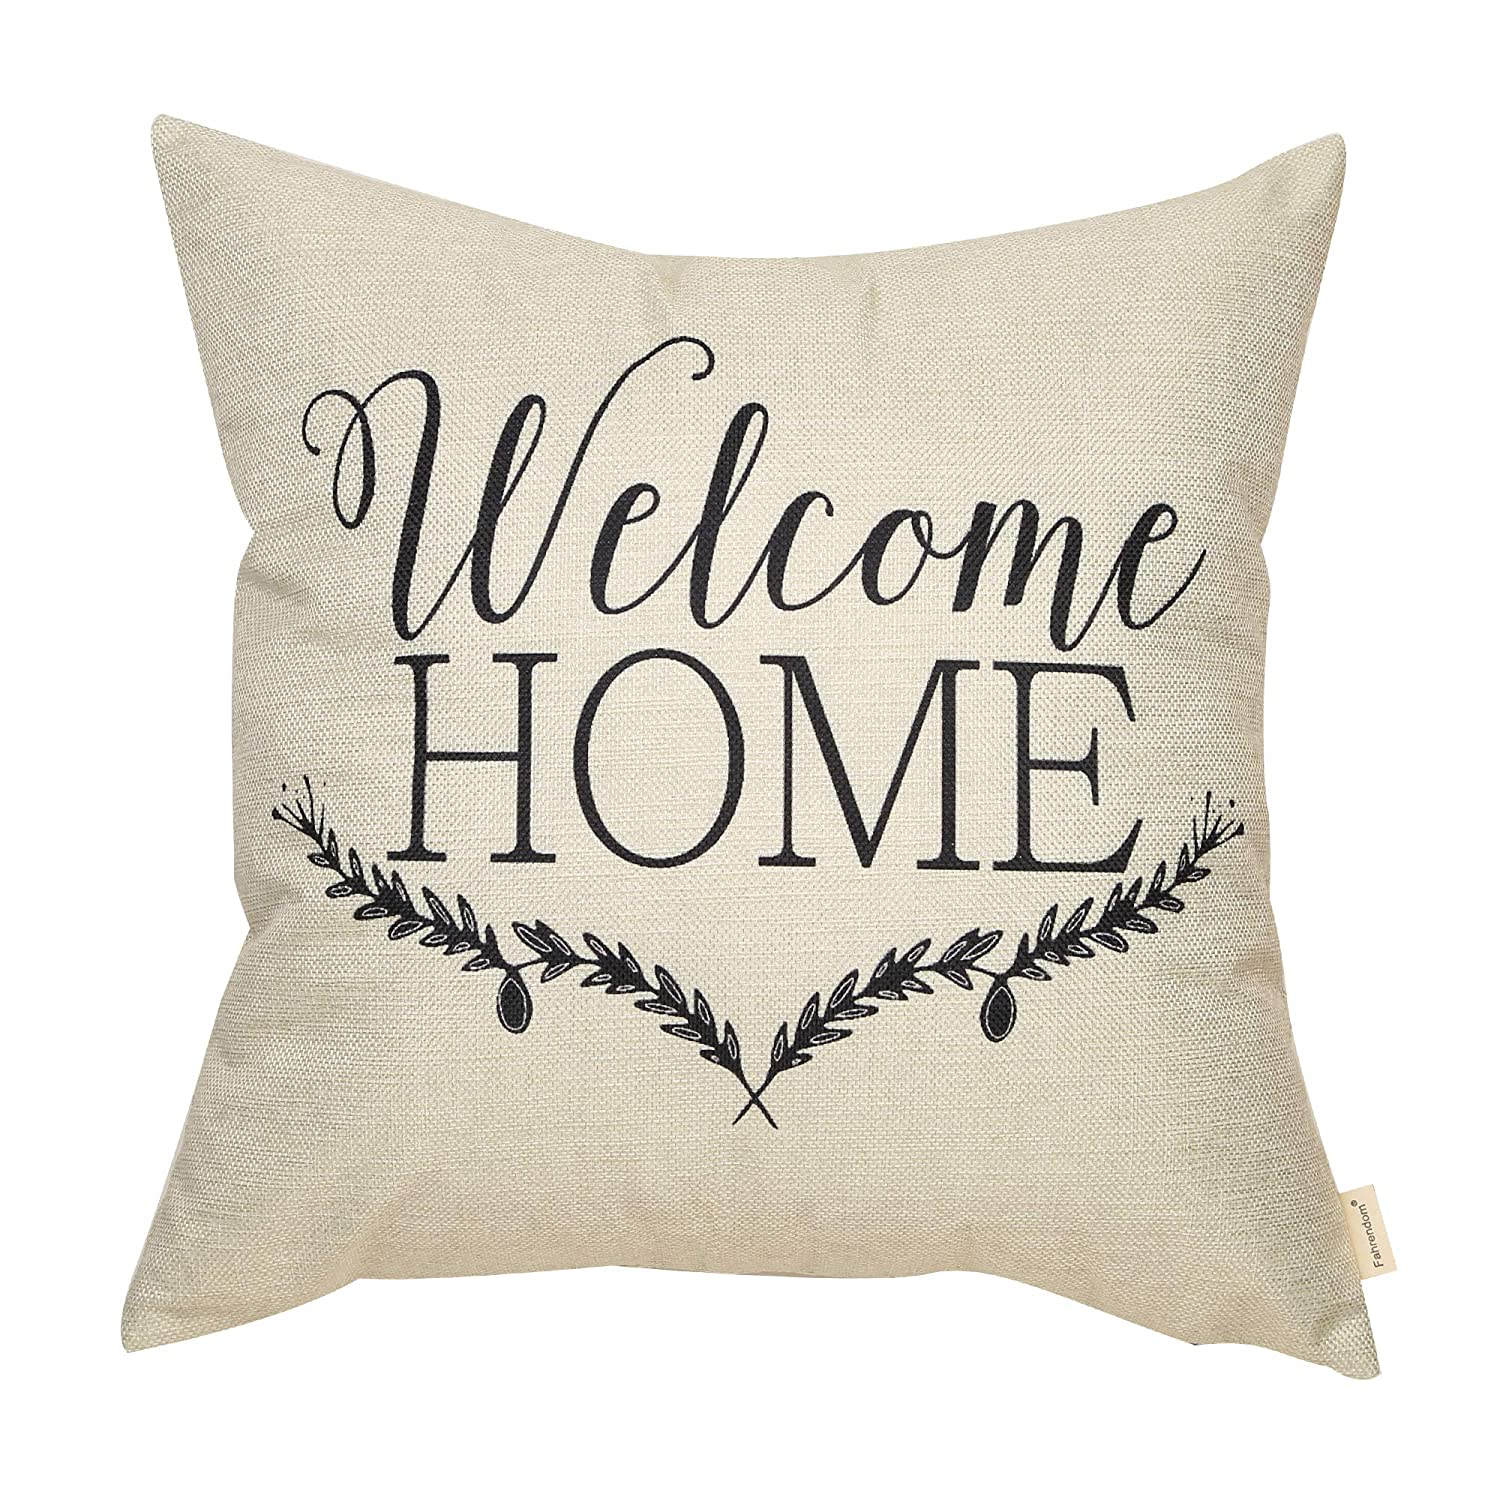 Fahrendom Rustic Welcome Home Olive Branch Farmhouse Style Spring Sign Cotton Linen Home Decorative Throw Pillow Case Cushion Cover with Words for Sofa Couch, 18 x 18 in